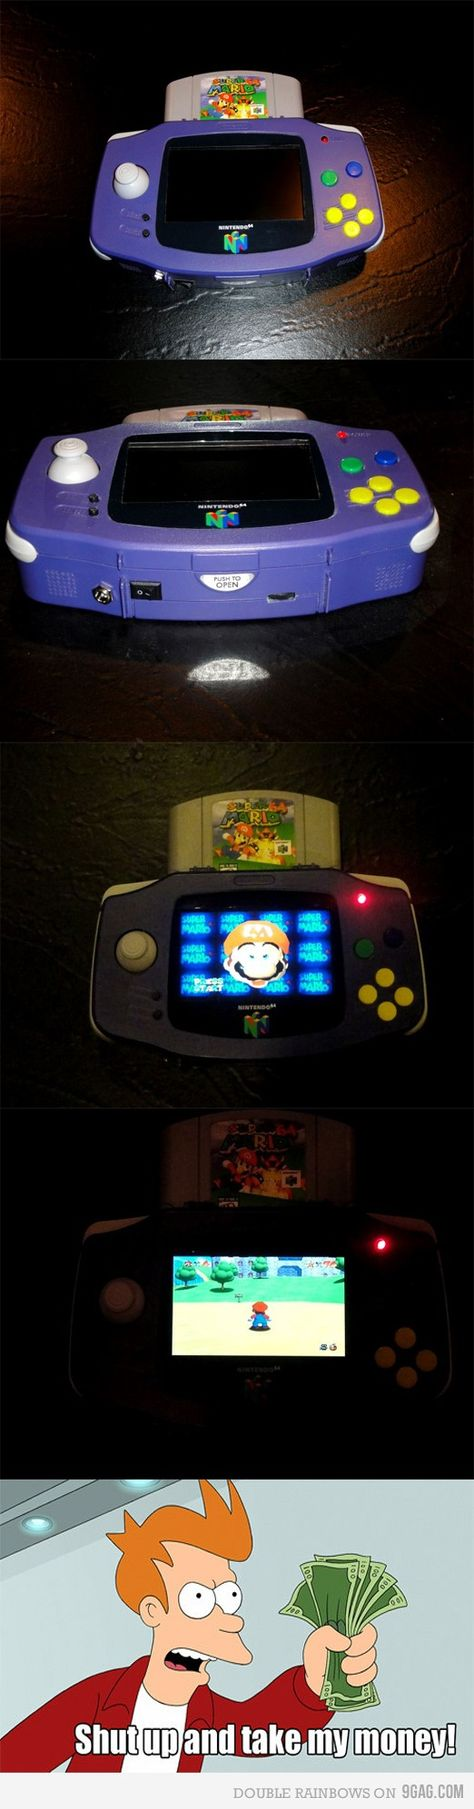 Handheld Nintendo 64 - The inclusion of a GameCube stick seals the deal for us. #gimmegimme #n64